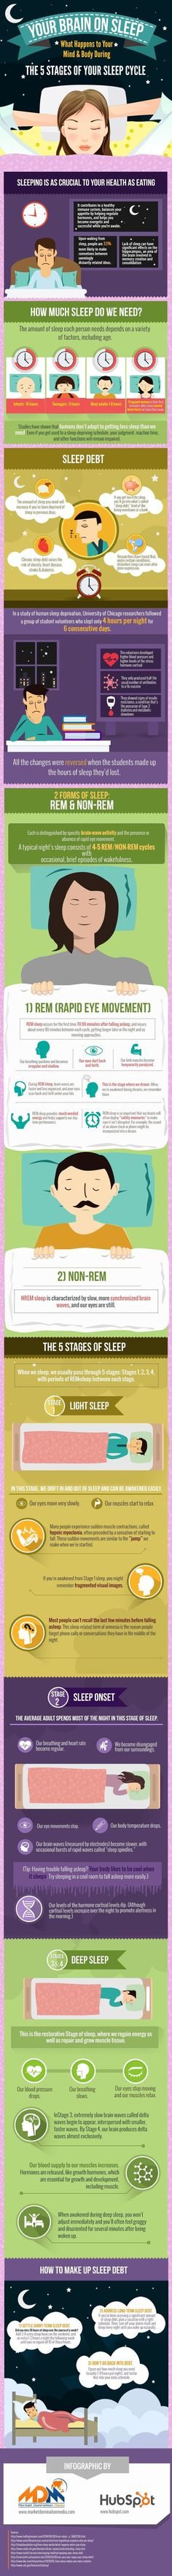 Sleep is as important as eating. Here's What Sleep Does To Your Body